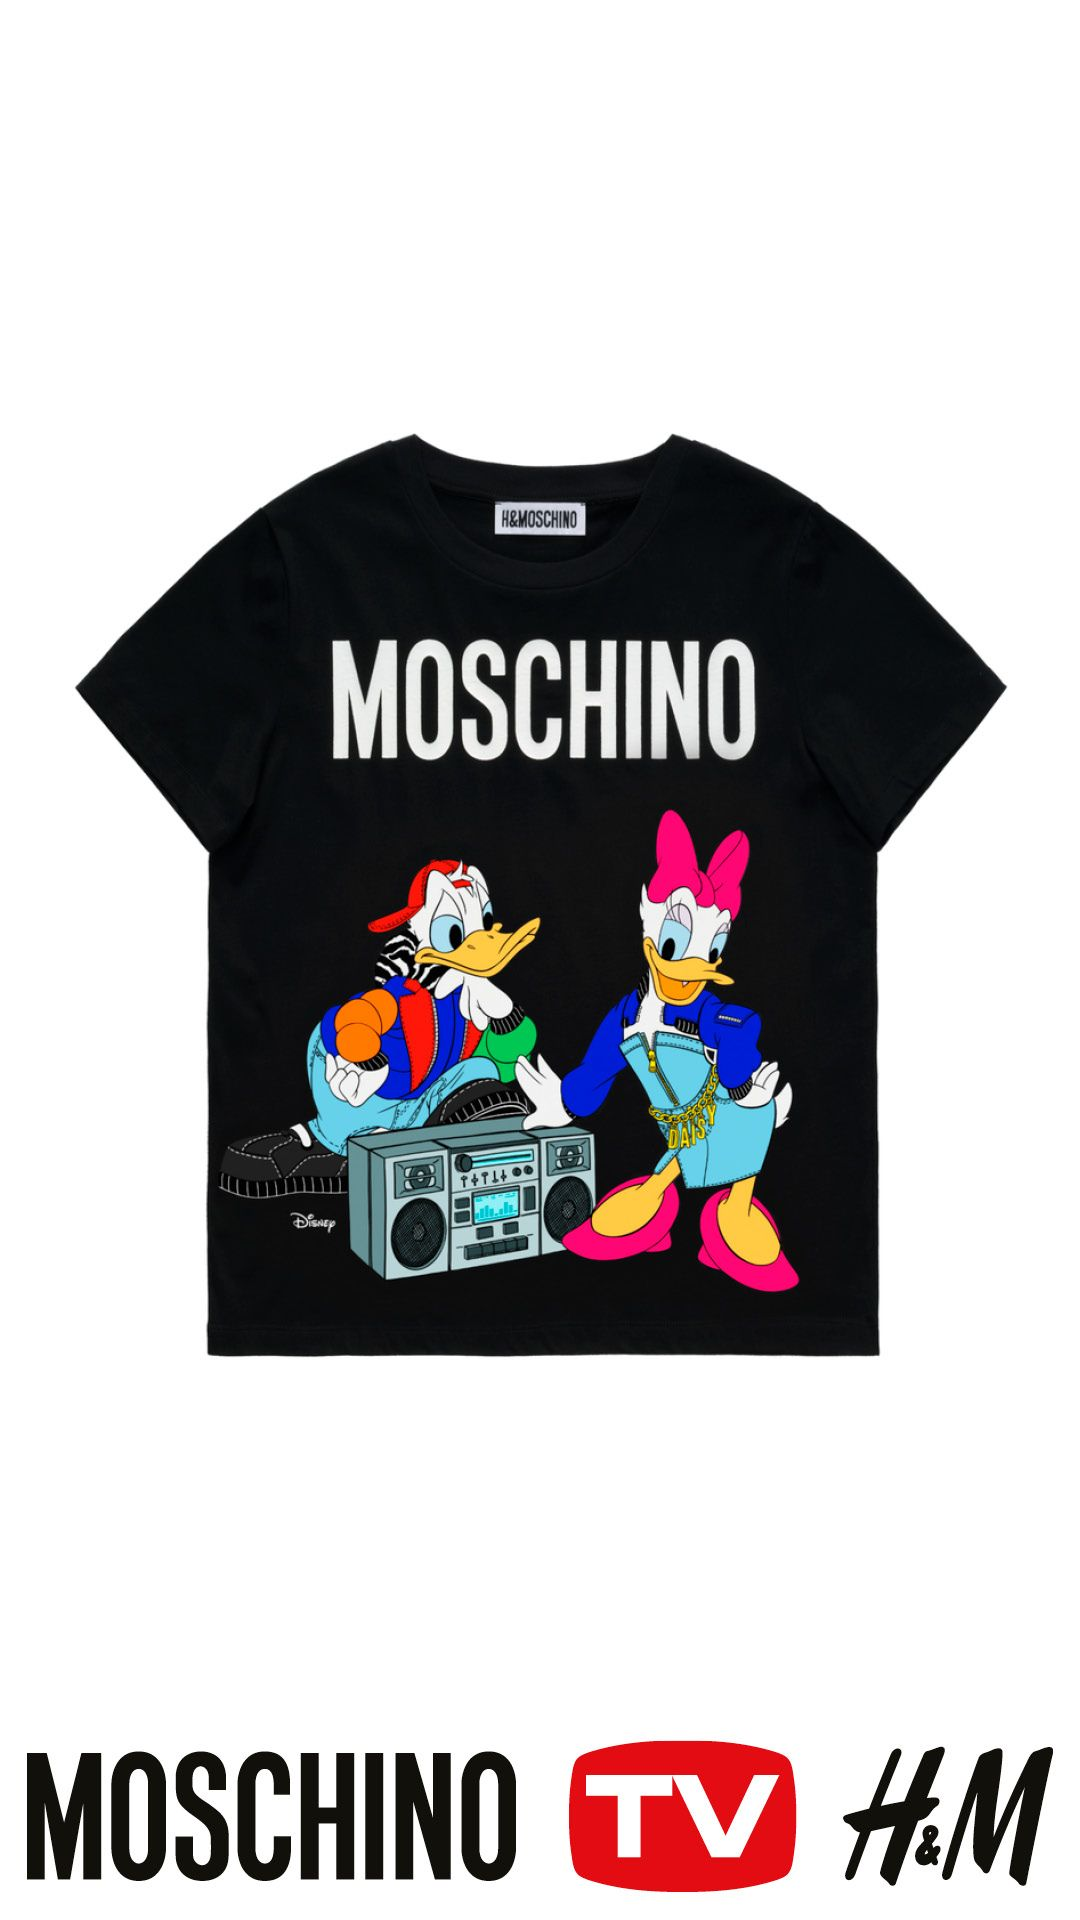 29e75a1a68c MOSCHINO  tv  H amp M features bold streetwear-inspired clothing and  accessories for